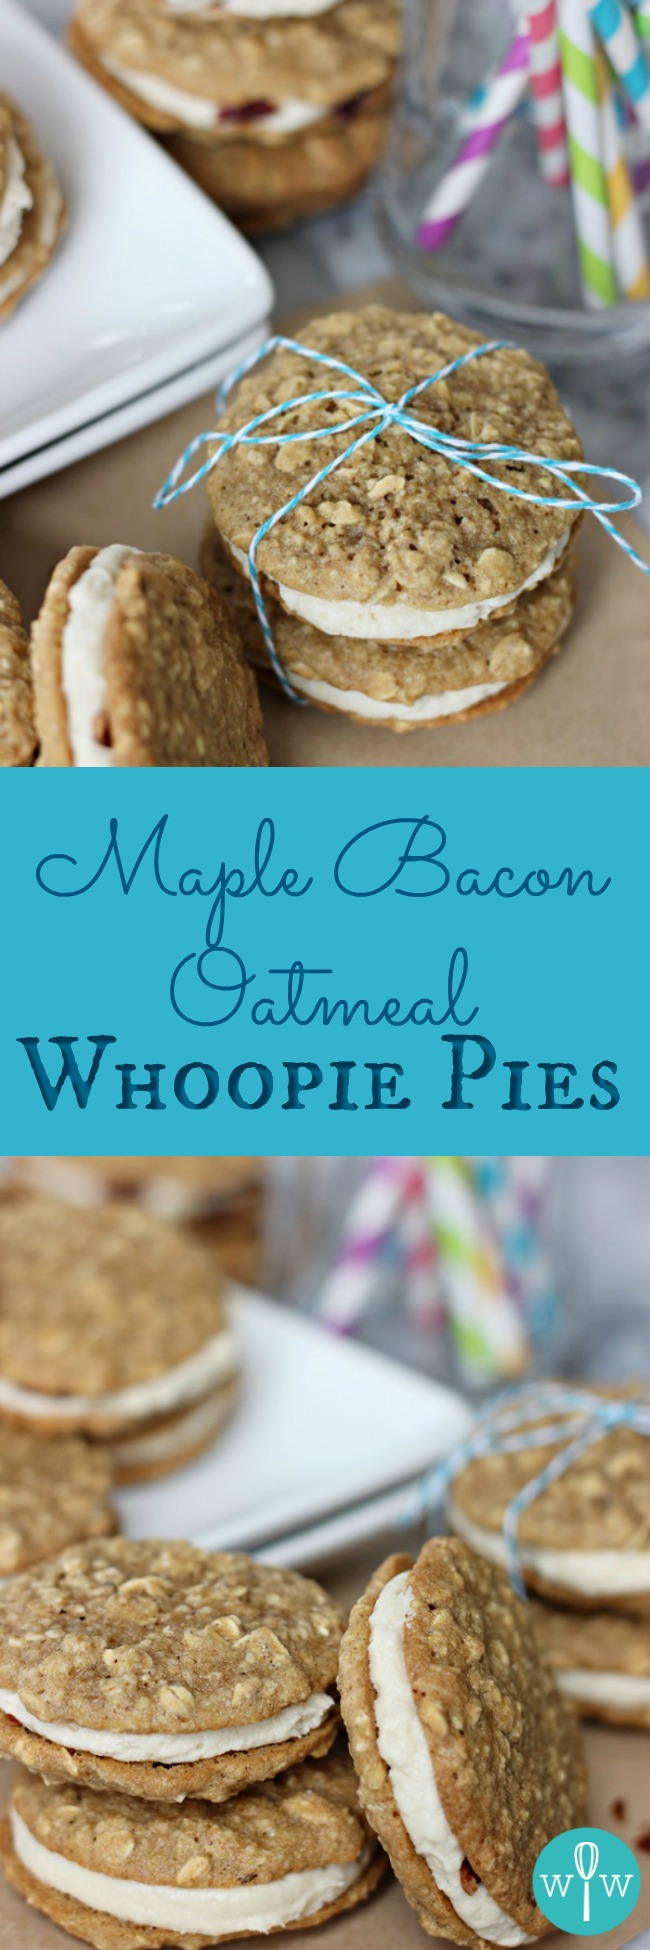 Maple Bacon Oatmeal Whoopie Pies – Creamy maple filling and crispy bacon sandwiched between two chewy oatmeal cookies taste just like breakfast! | www.worthwhisking.com